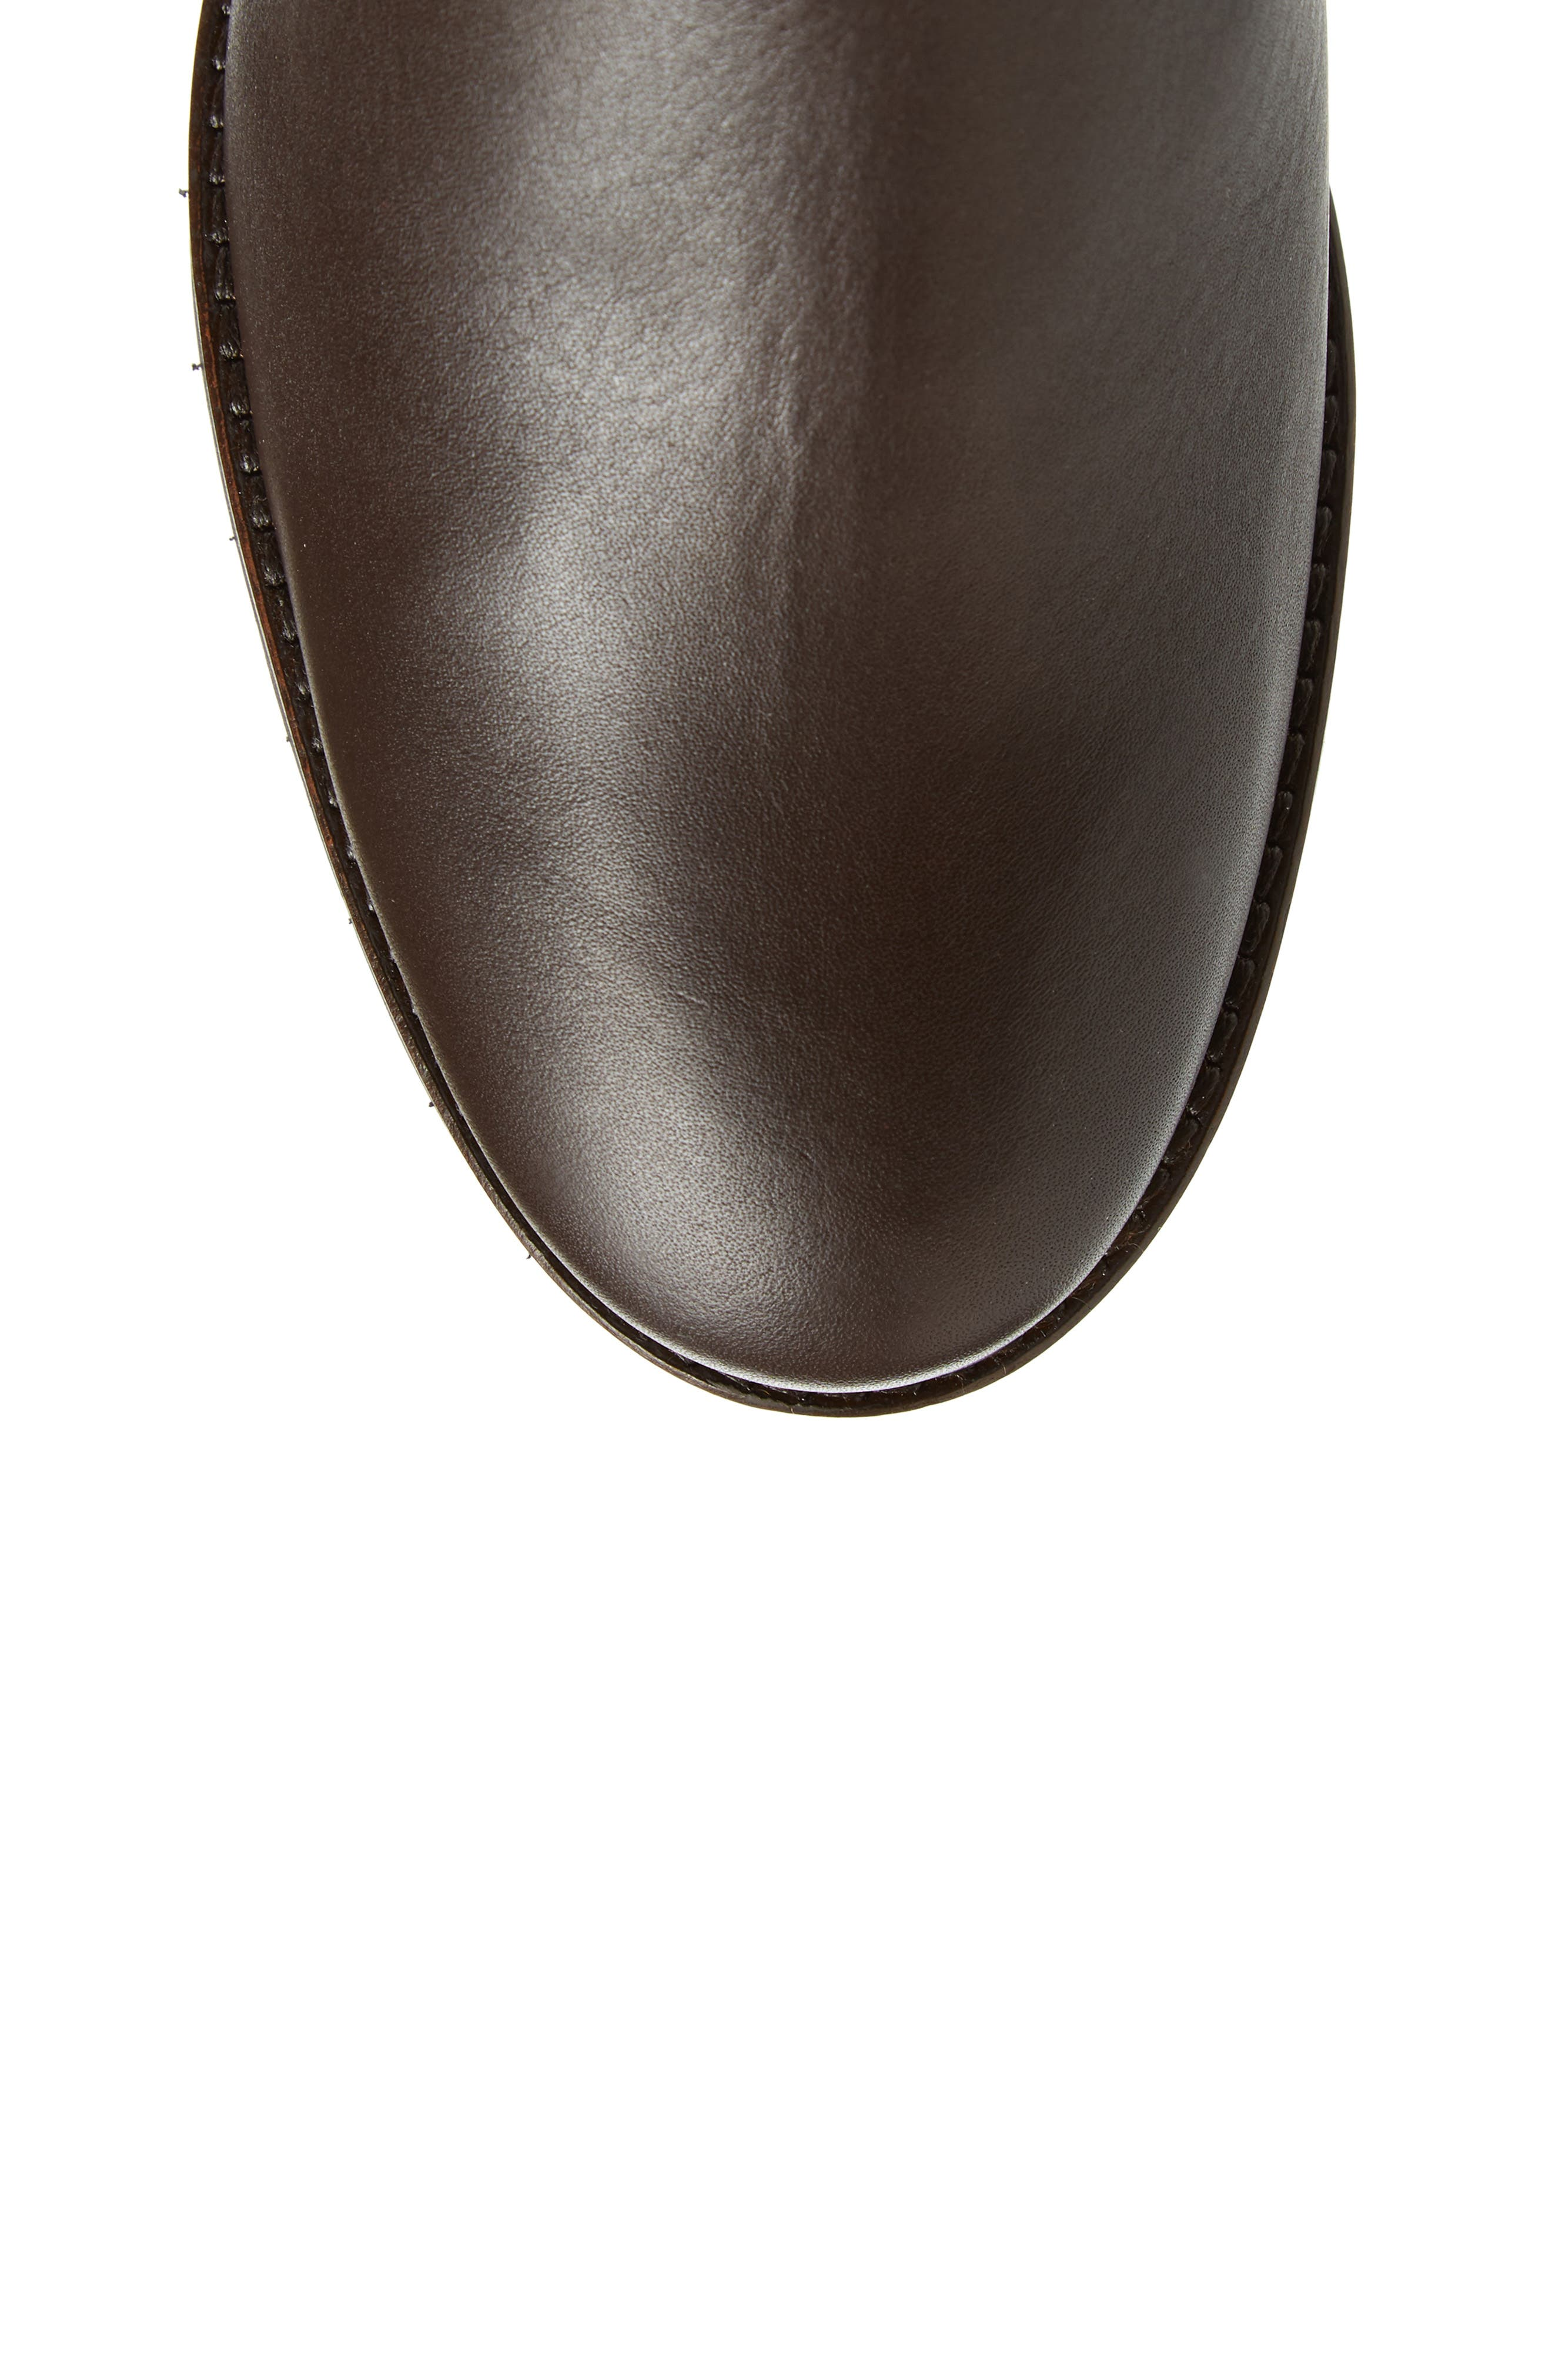 Anson Waterproof Boot,                             Alternate thumbnail 5, color,                             Brown Leather